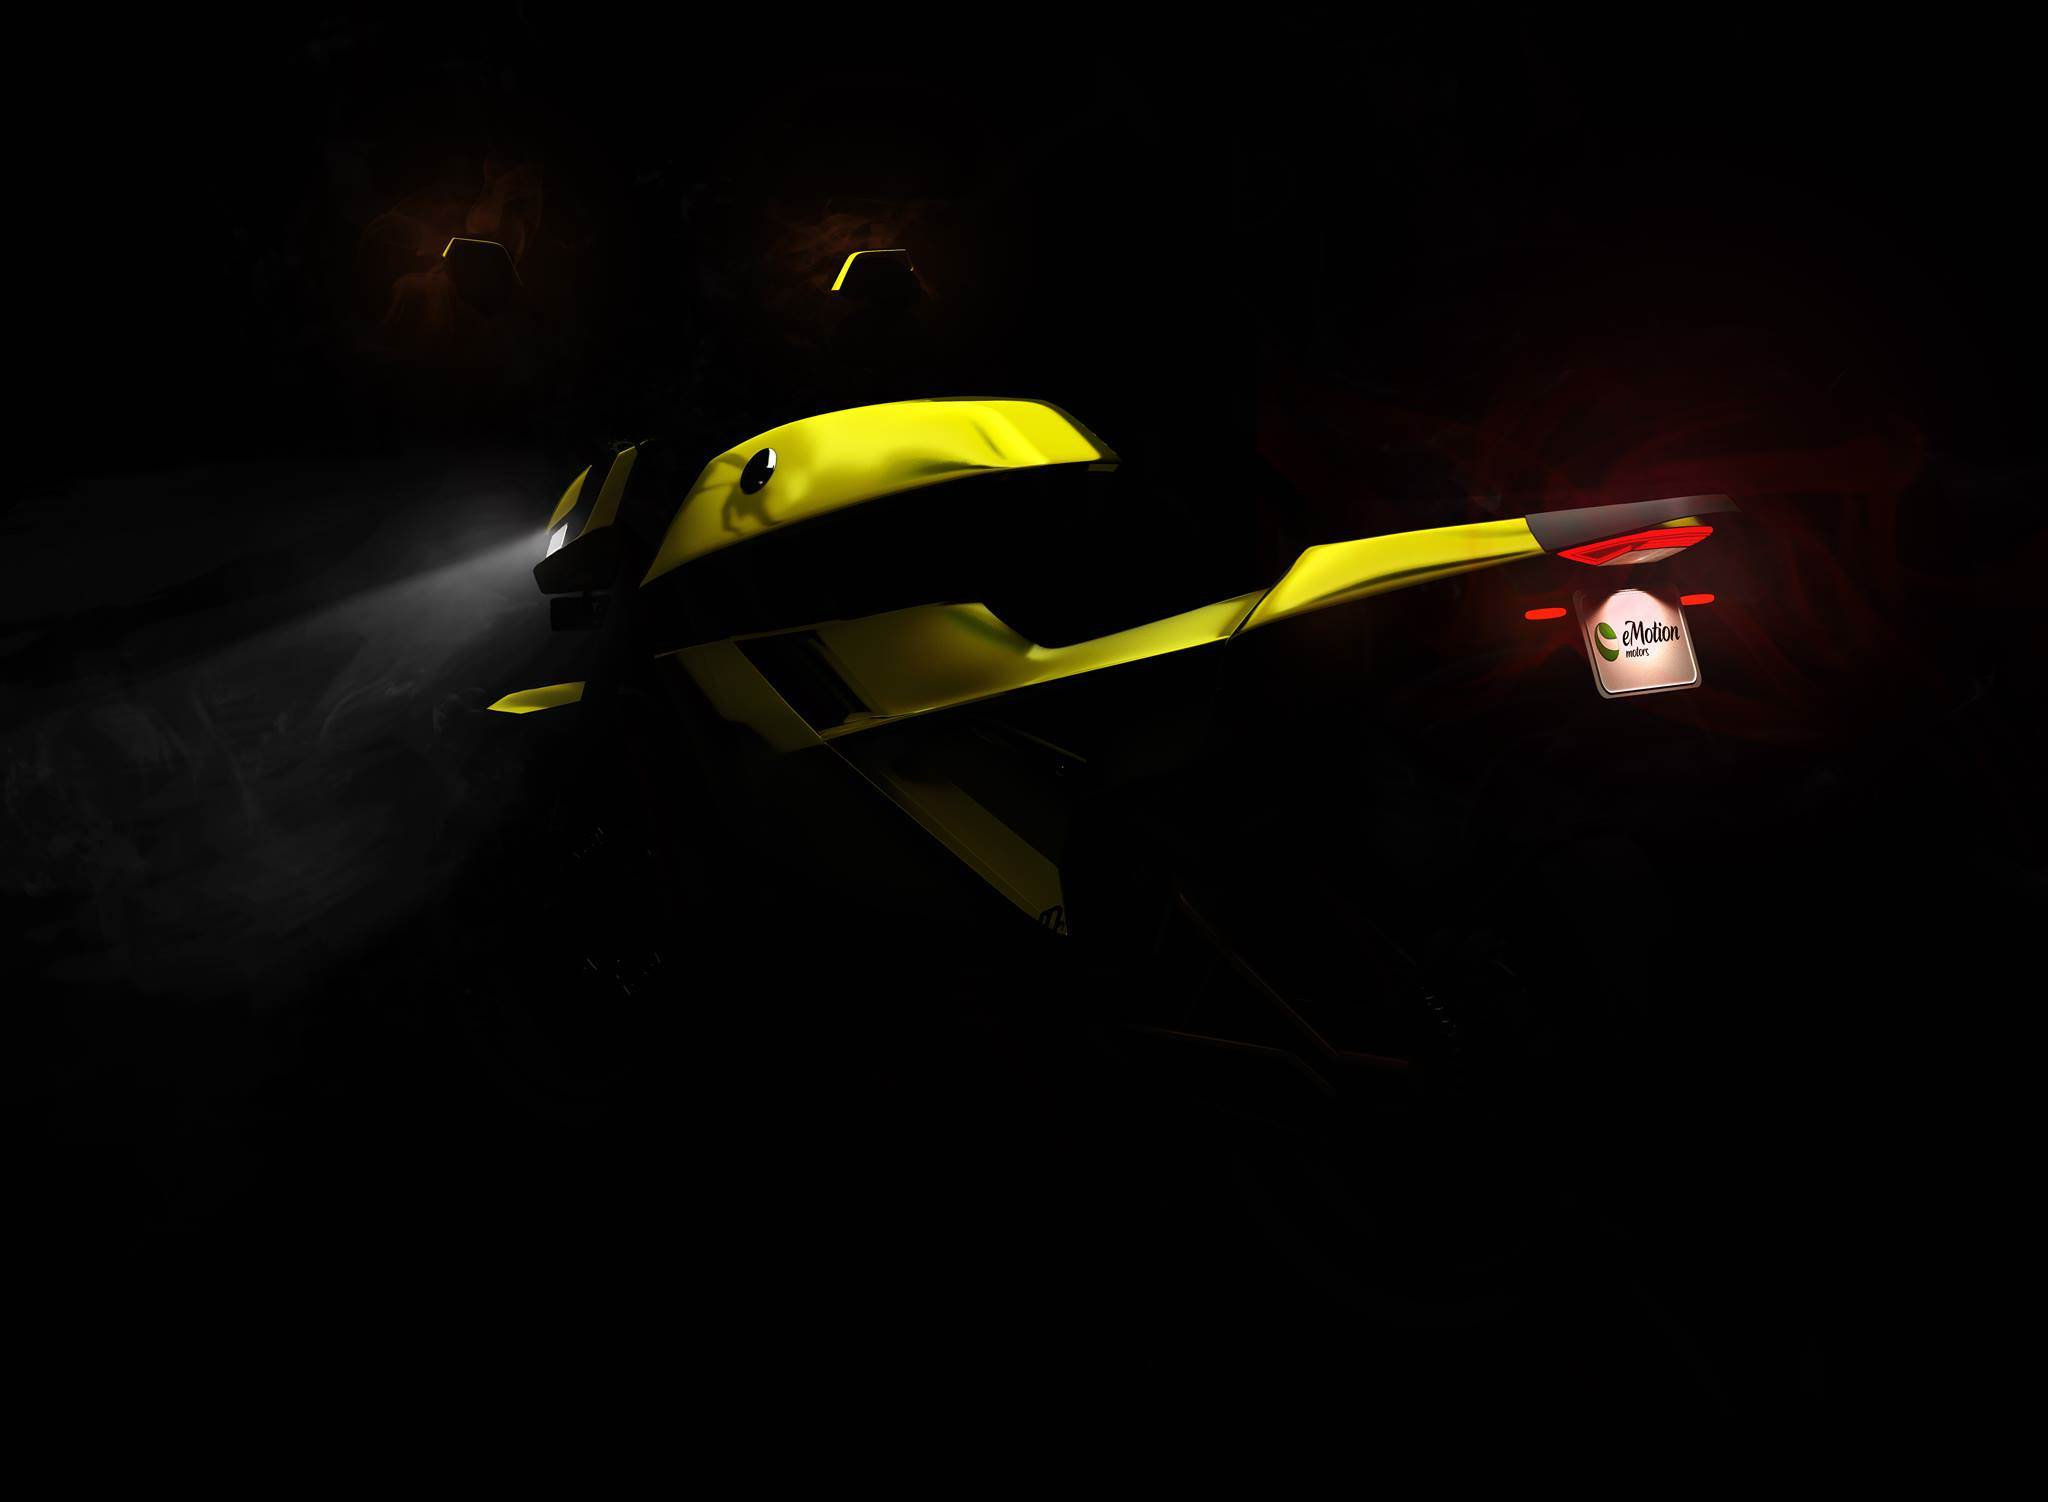 Coimbatore-based start-up to reveal geared electric motorcycle